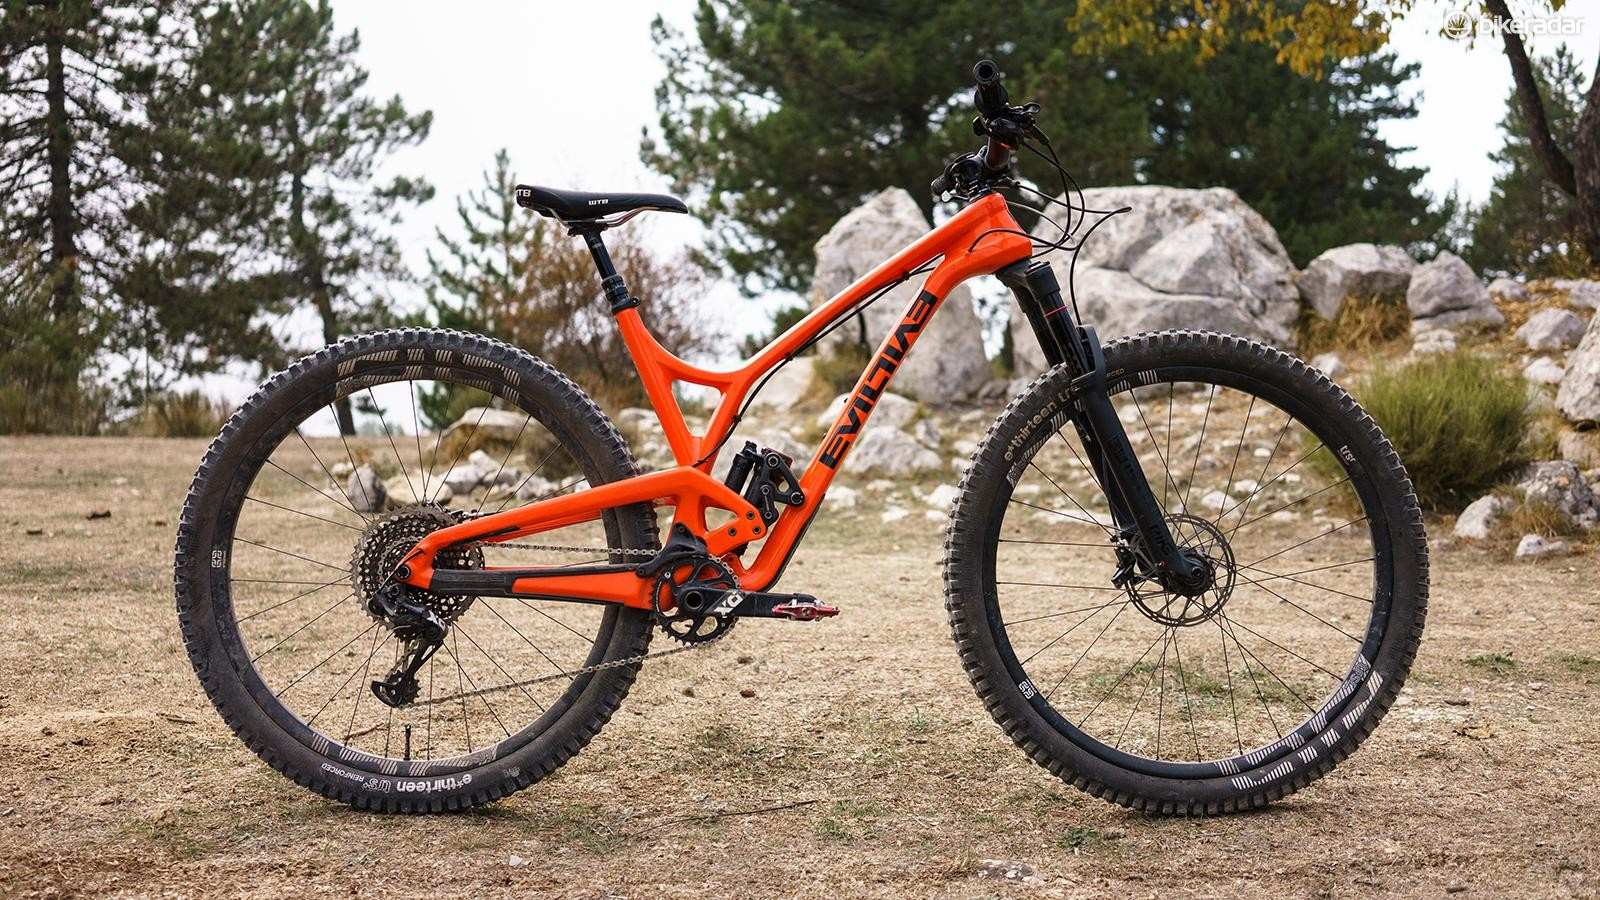 Evil's The Following MB is a super tight package that, despite being short travel, is rowdy on the trail